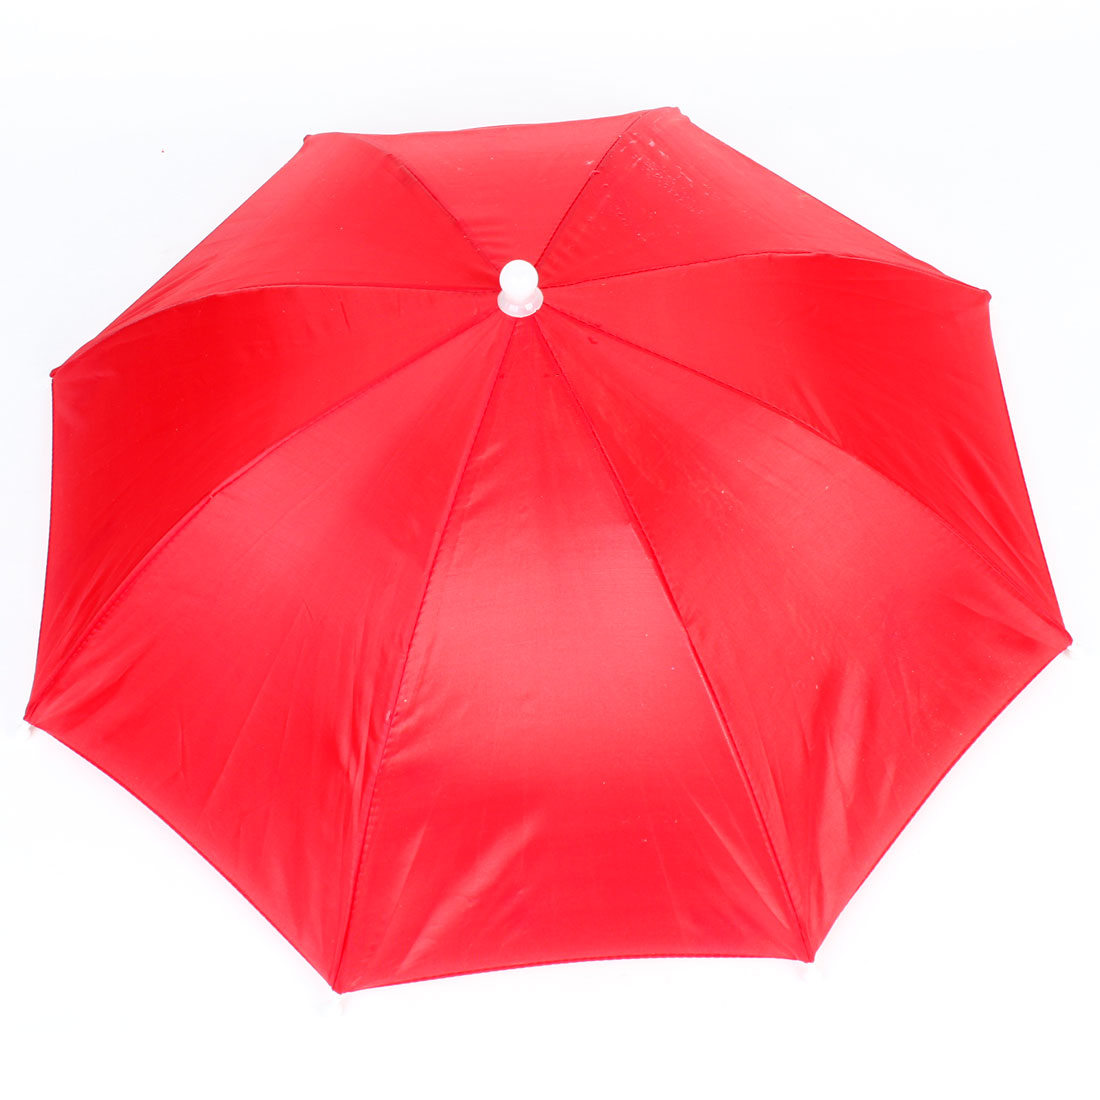 Outdoor Fishing Headwear Red Polyester Canopy Compact Umbrella Hat